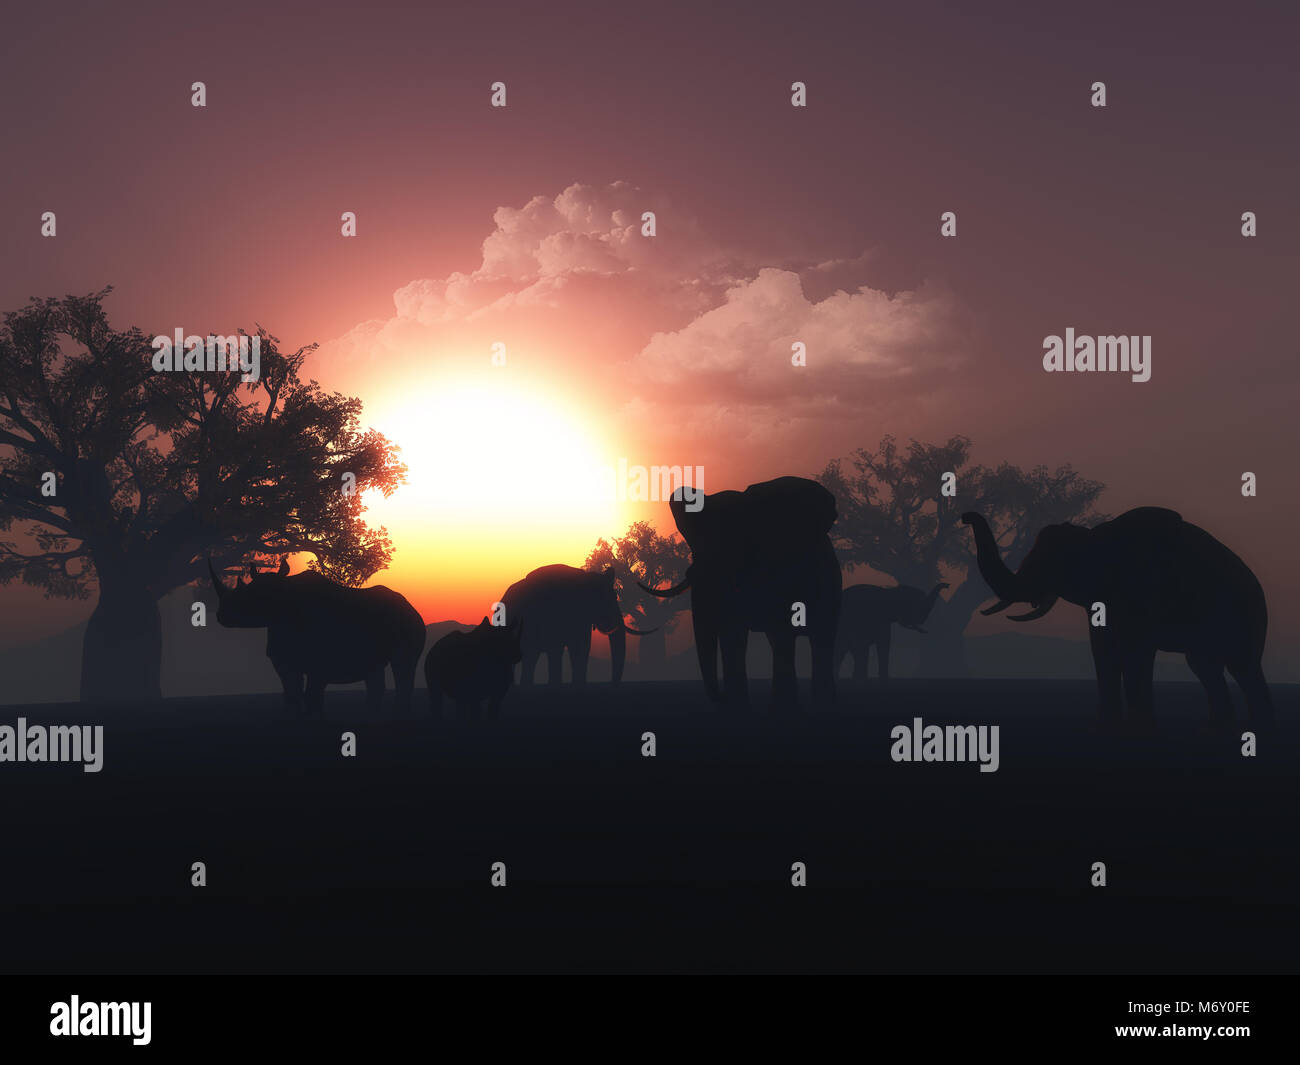 3D render of wild animals in a sunset landscape - Stock Image